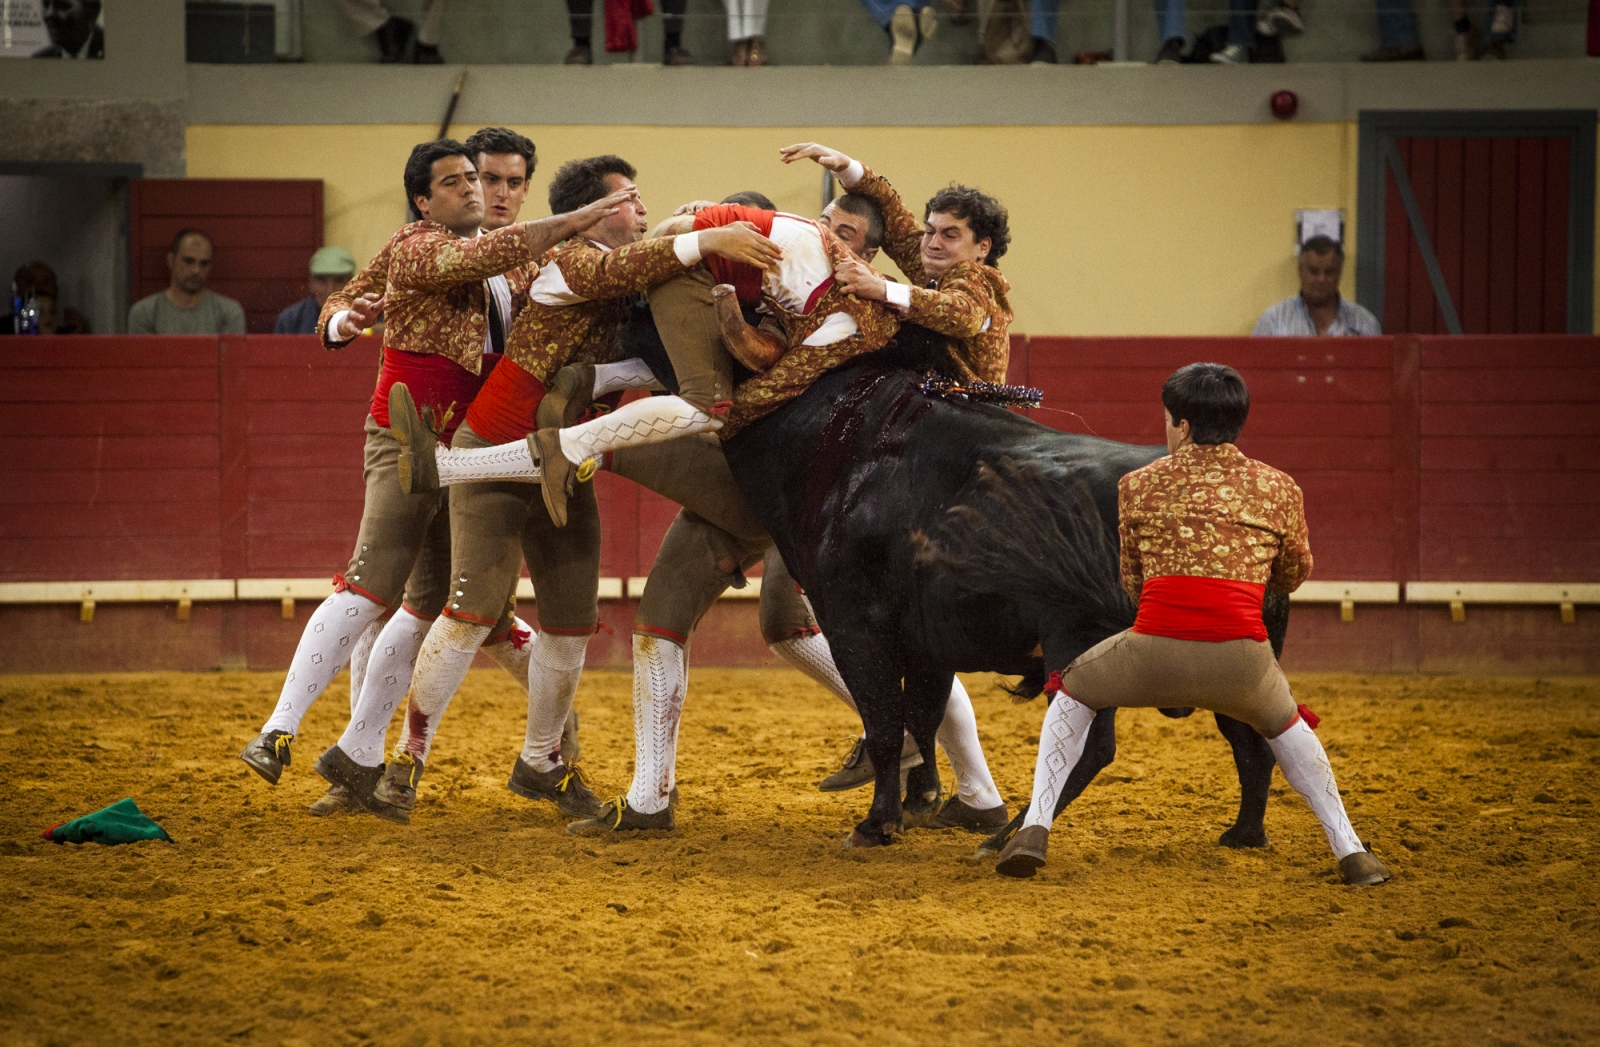 Forcado leads the bull after the face catch and is helped by the rest of the group. The forcado must be kept in the head of the bull until he stops, otherwise he has to performe another face catch. The reunion is the second part during the Forcados performance.